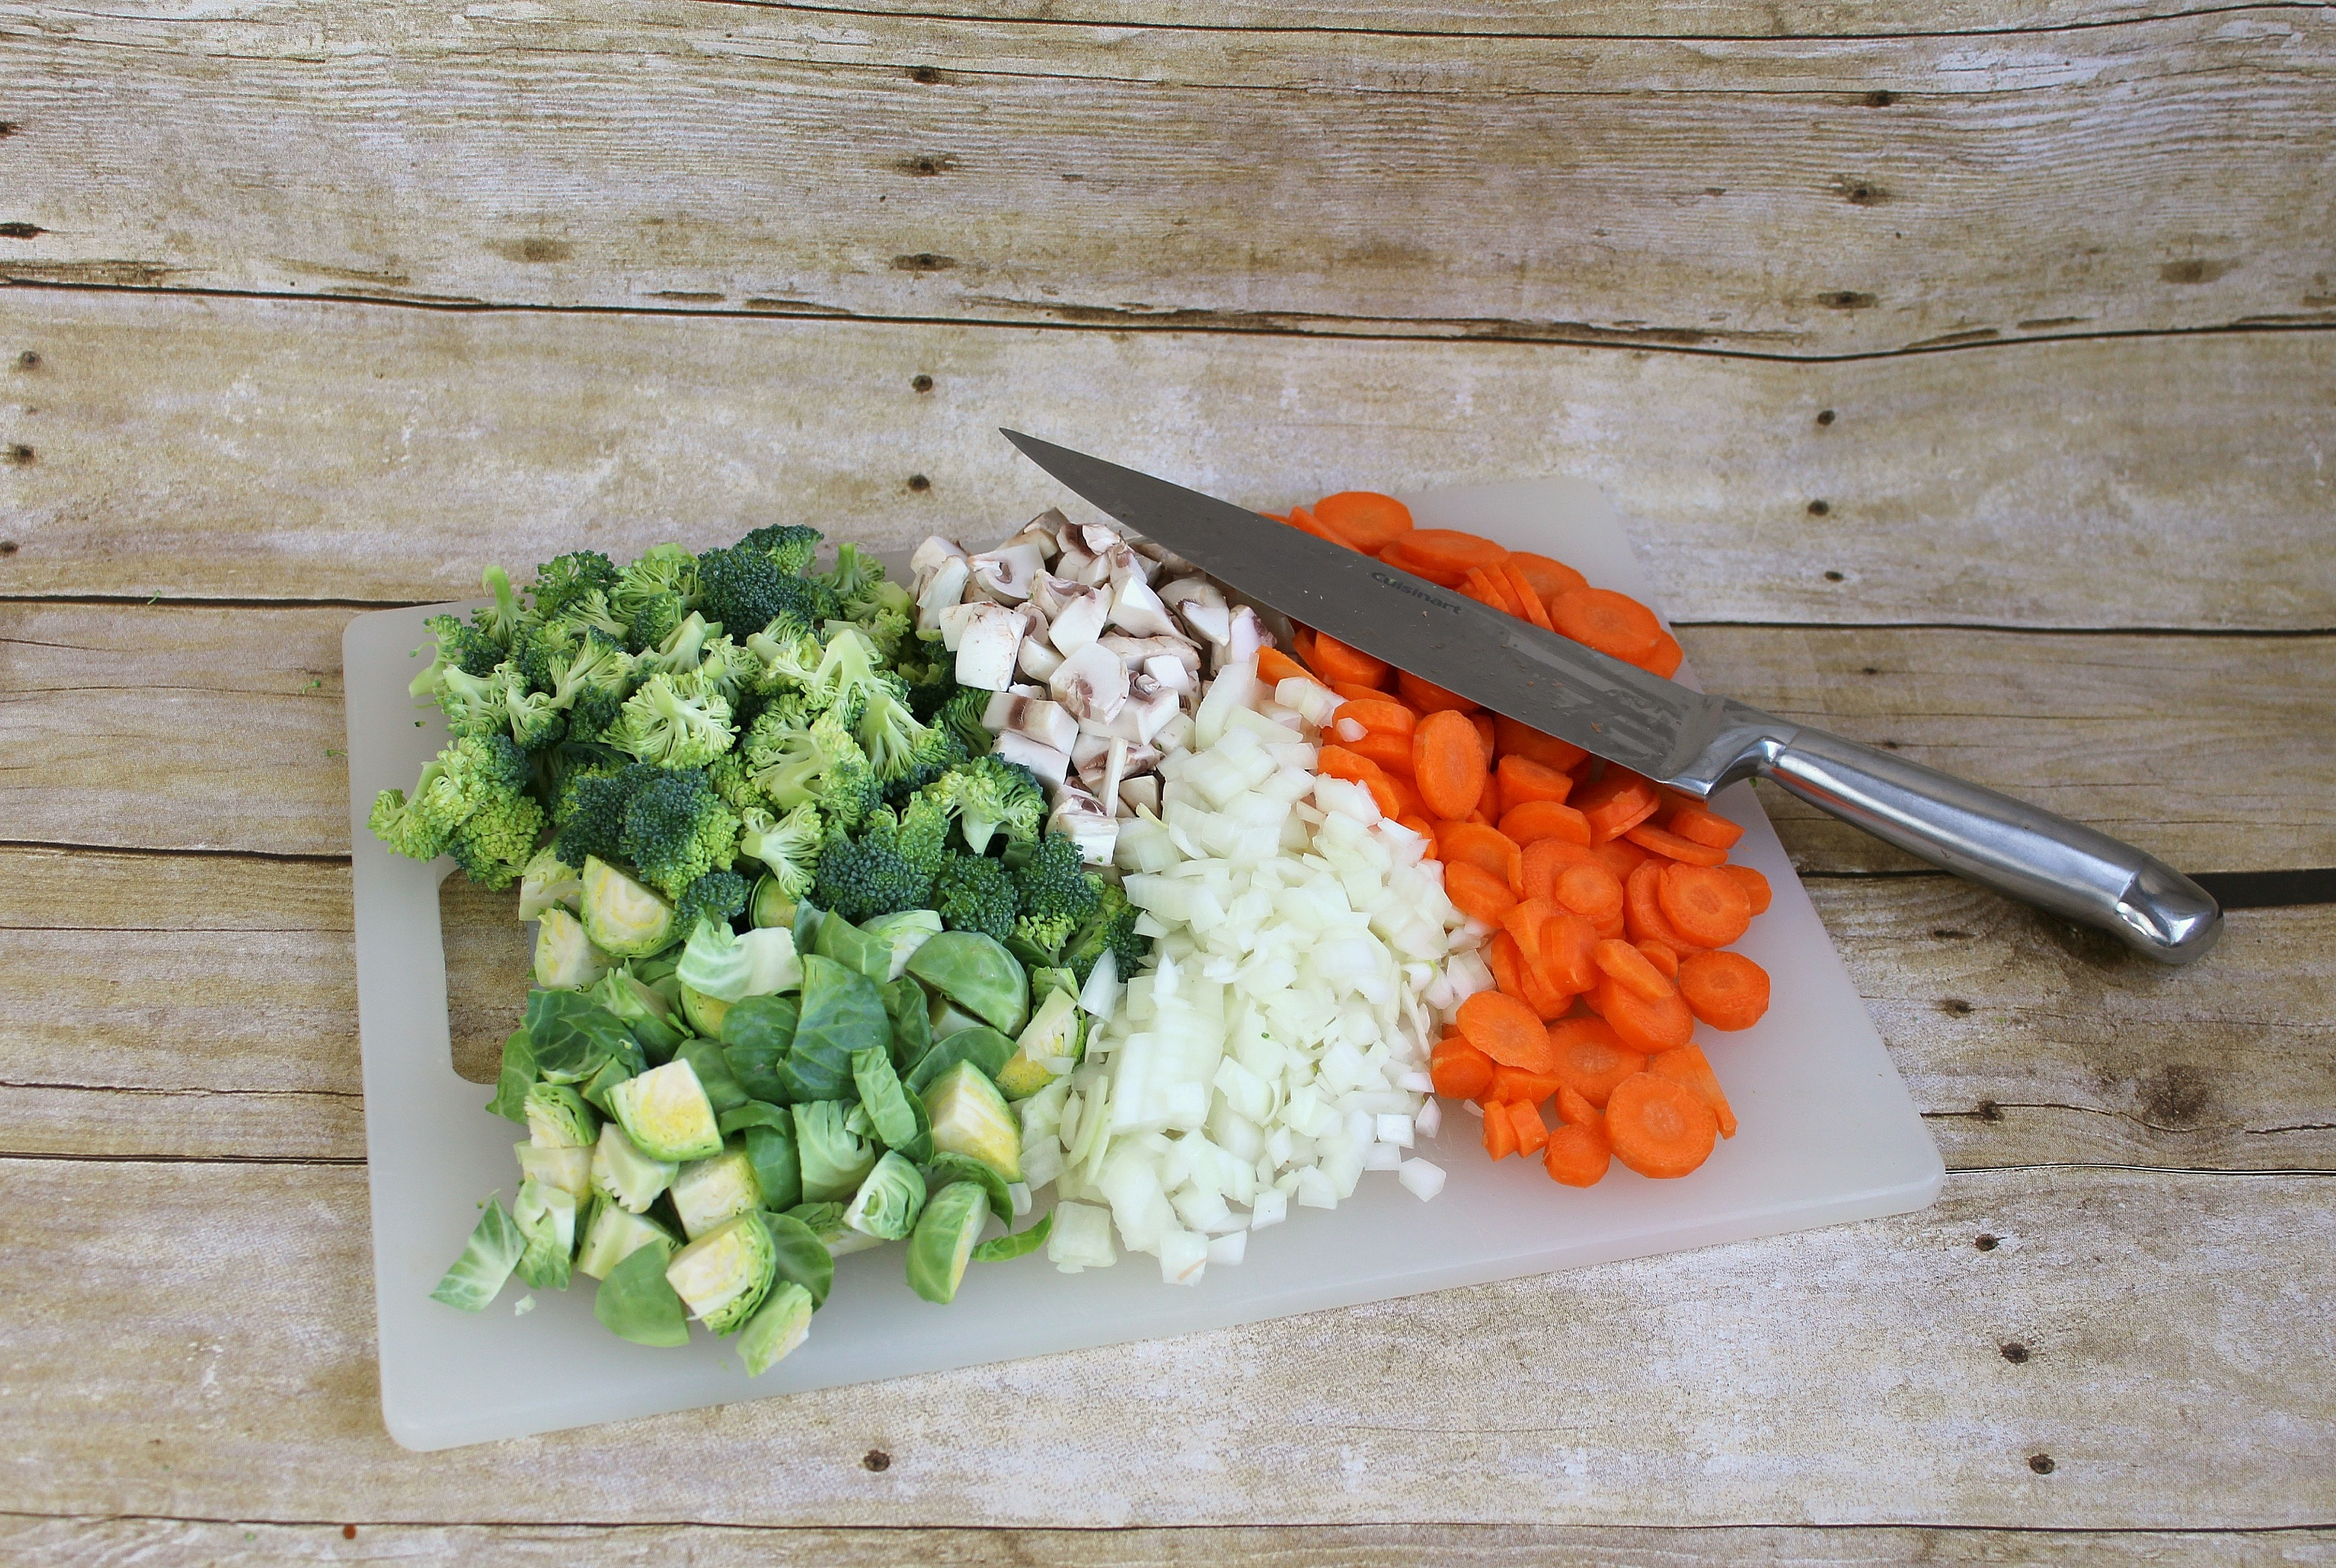 Chop broccoli, onions, carrots, and mushrooms and set aside